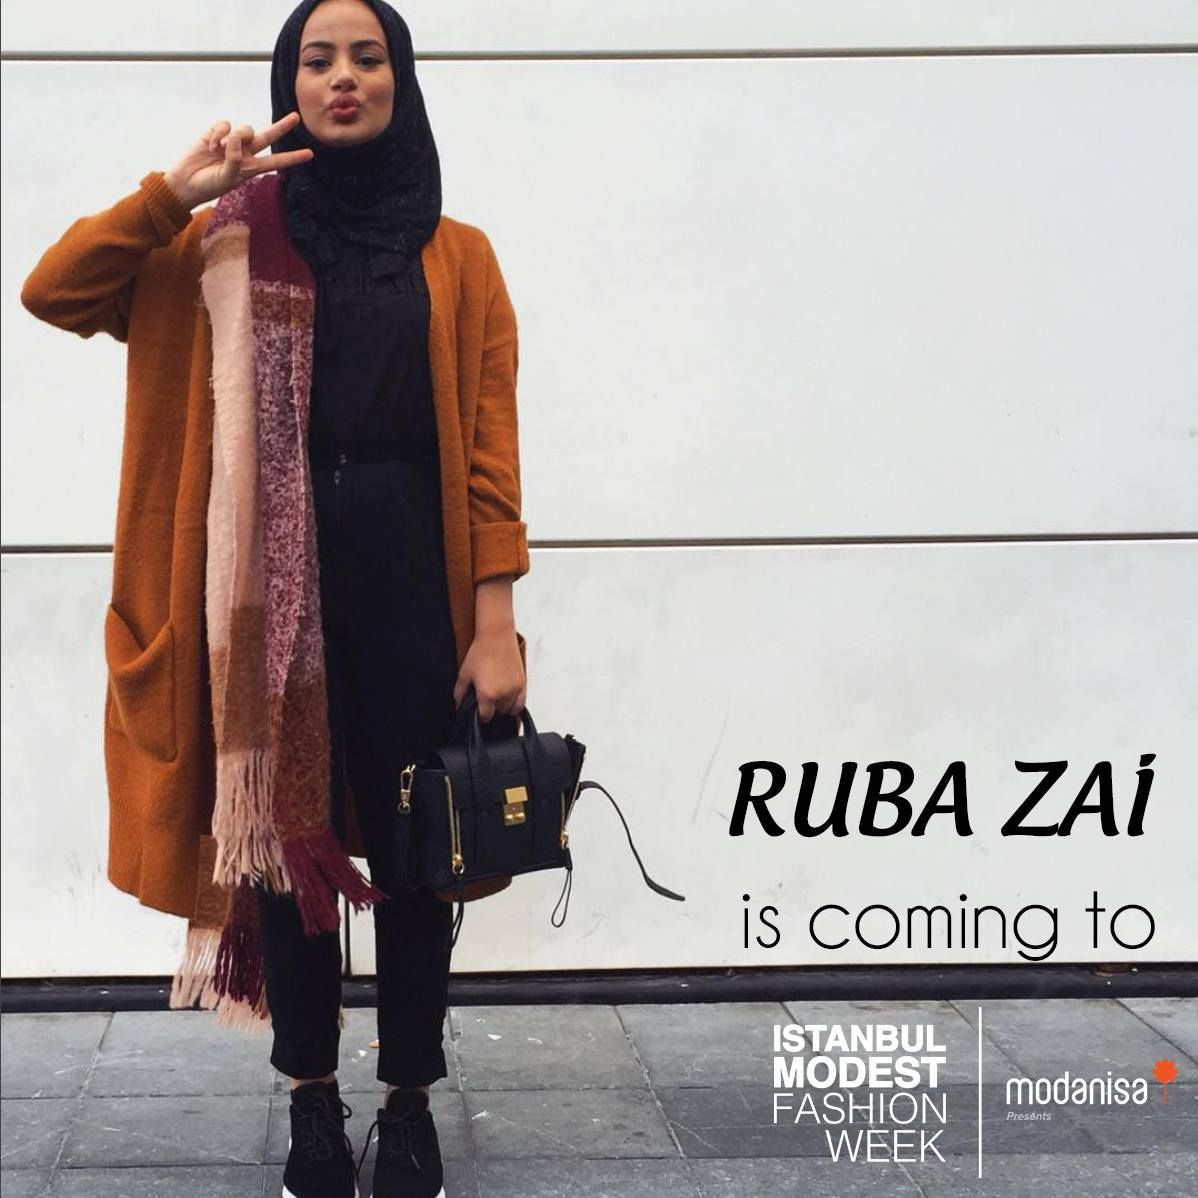 Famous fashion blogger - Famous Fashion Blogger Ruba Zai Will Be At Istanbul Modest Fashion Week You Can Follow